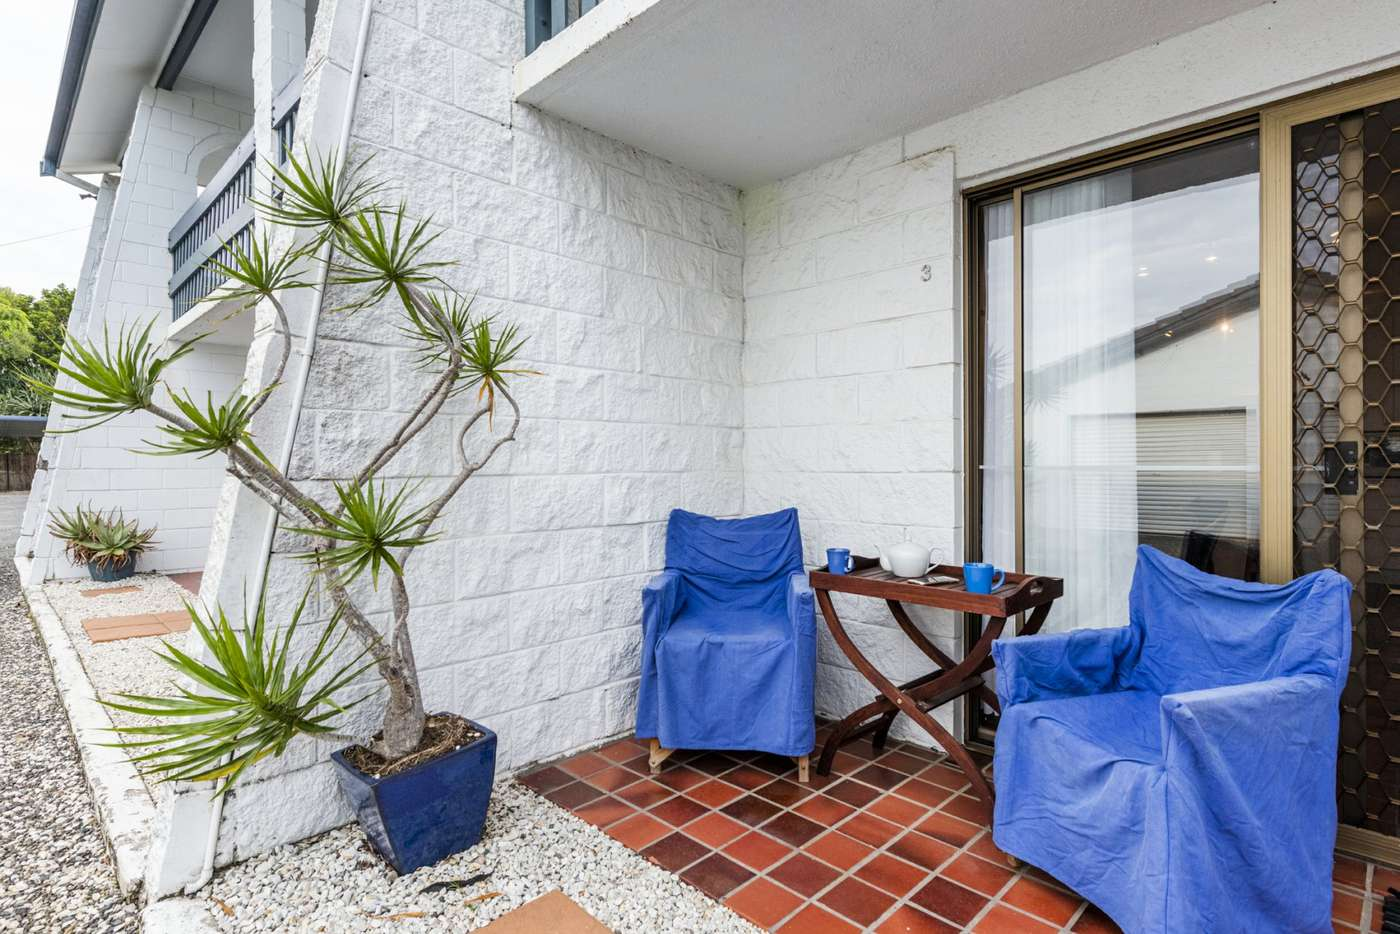 Main view of Homely unit listing, 3/4 Spenser Street, Iluka NSW 2466